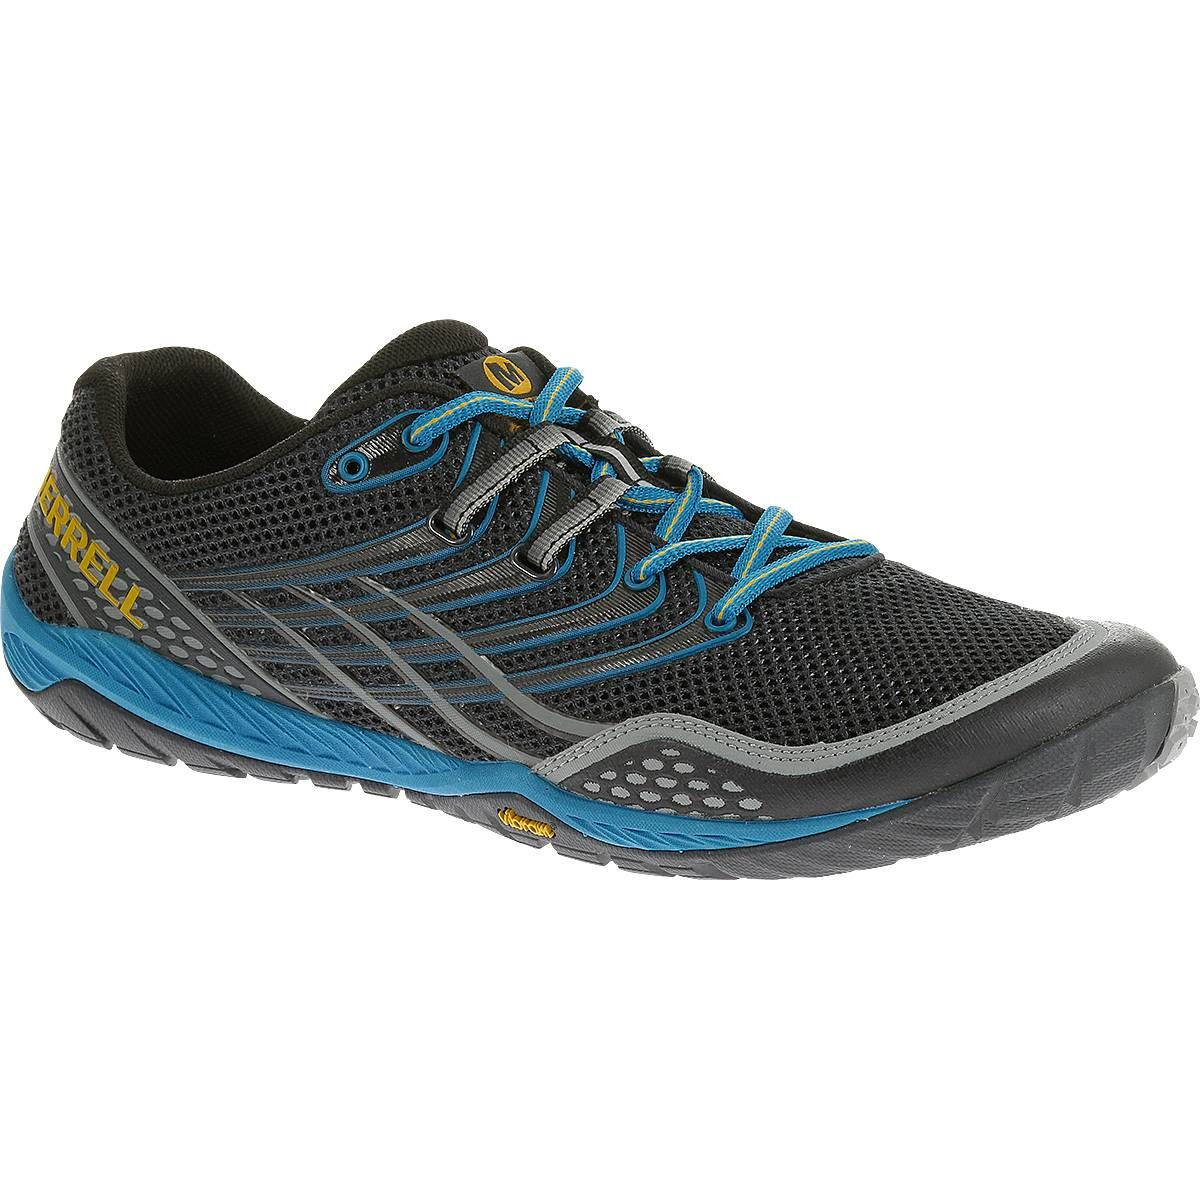 Merrell trail glove running shoes